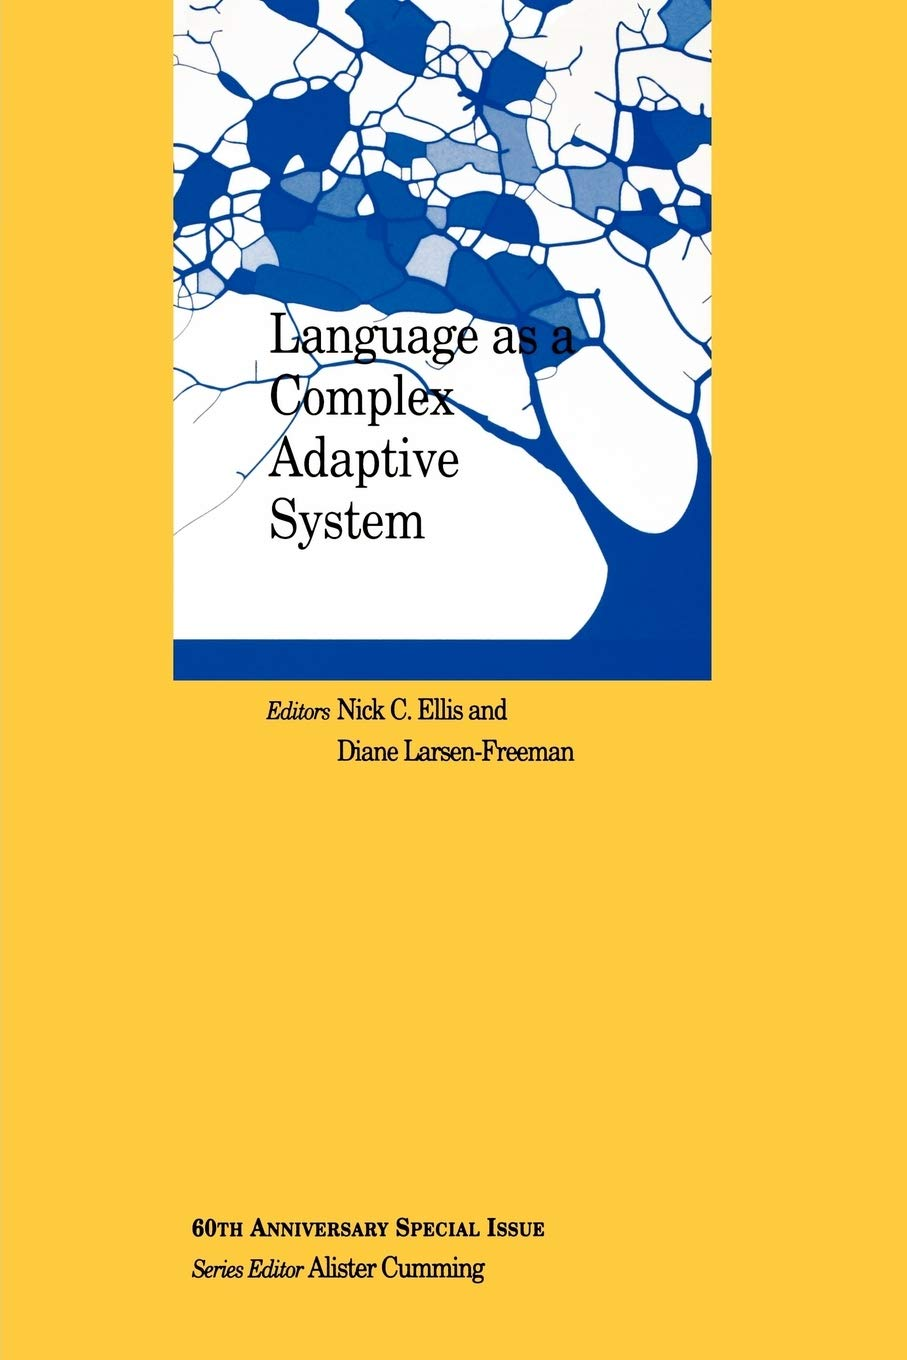 Language as a Complex Adaptive System Cover